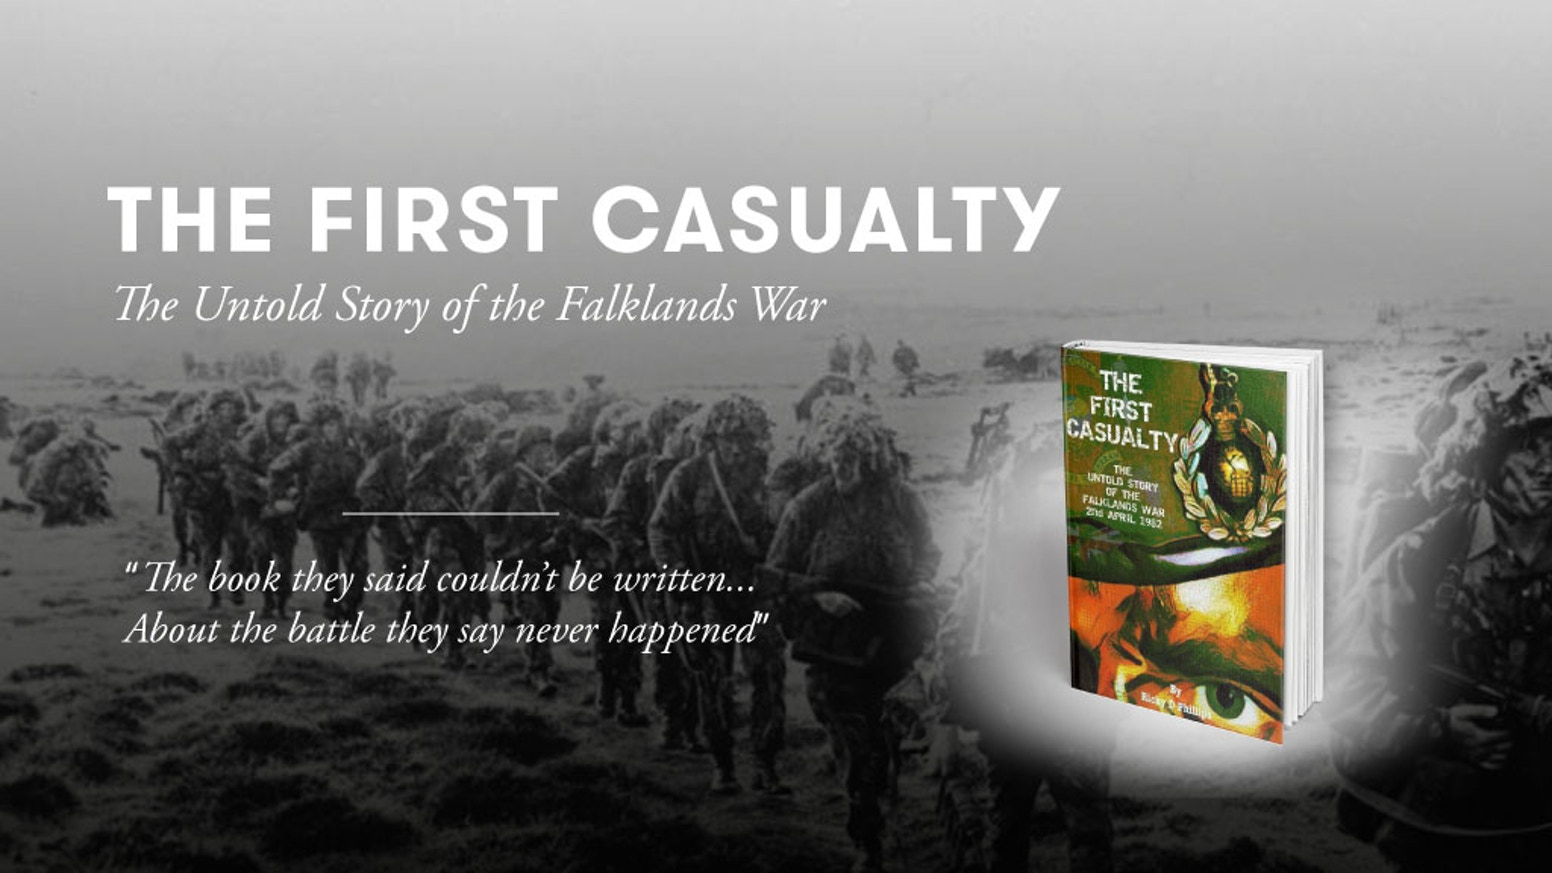 The Untold Story of the Falklands War - A book they said couldn't be written.. about a Battle they say never happened.